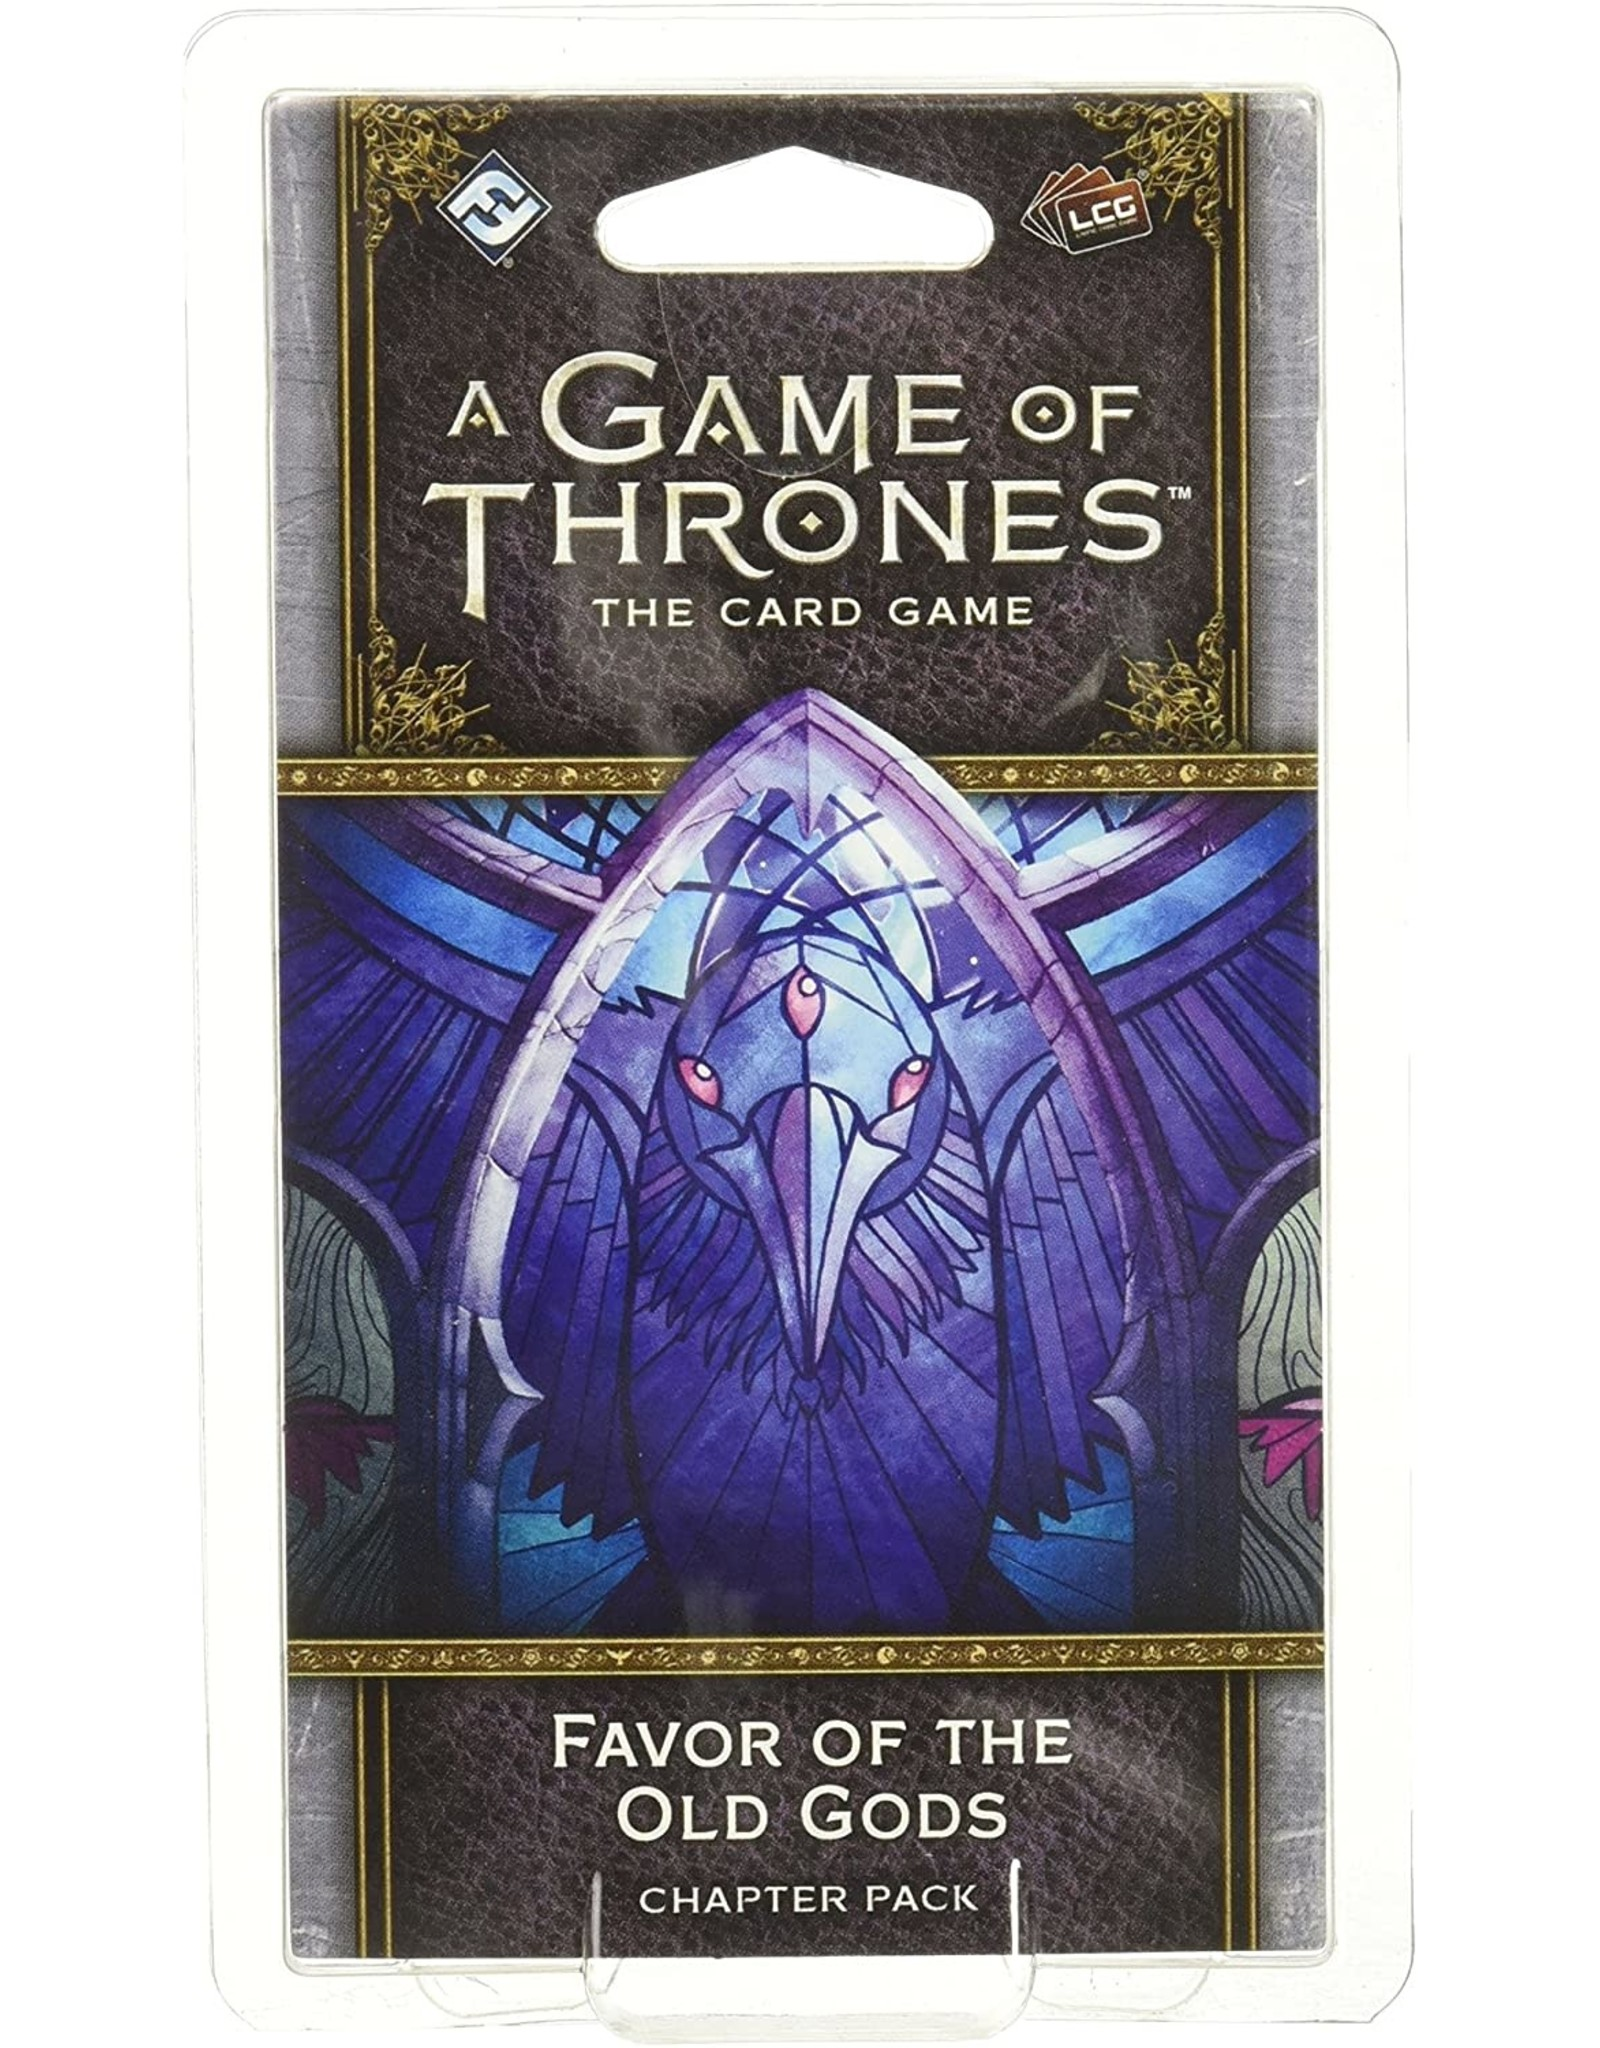 Game of Thrones LCG Favor of the Old Gods Chapter Pack